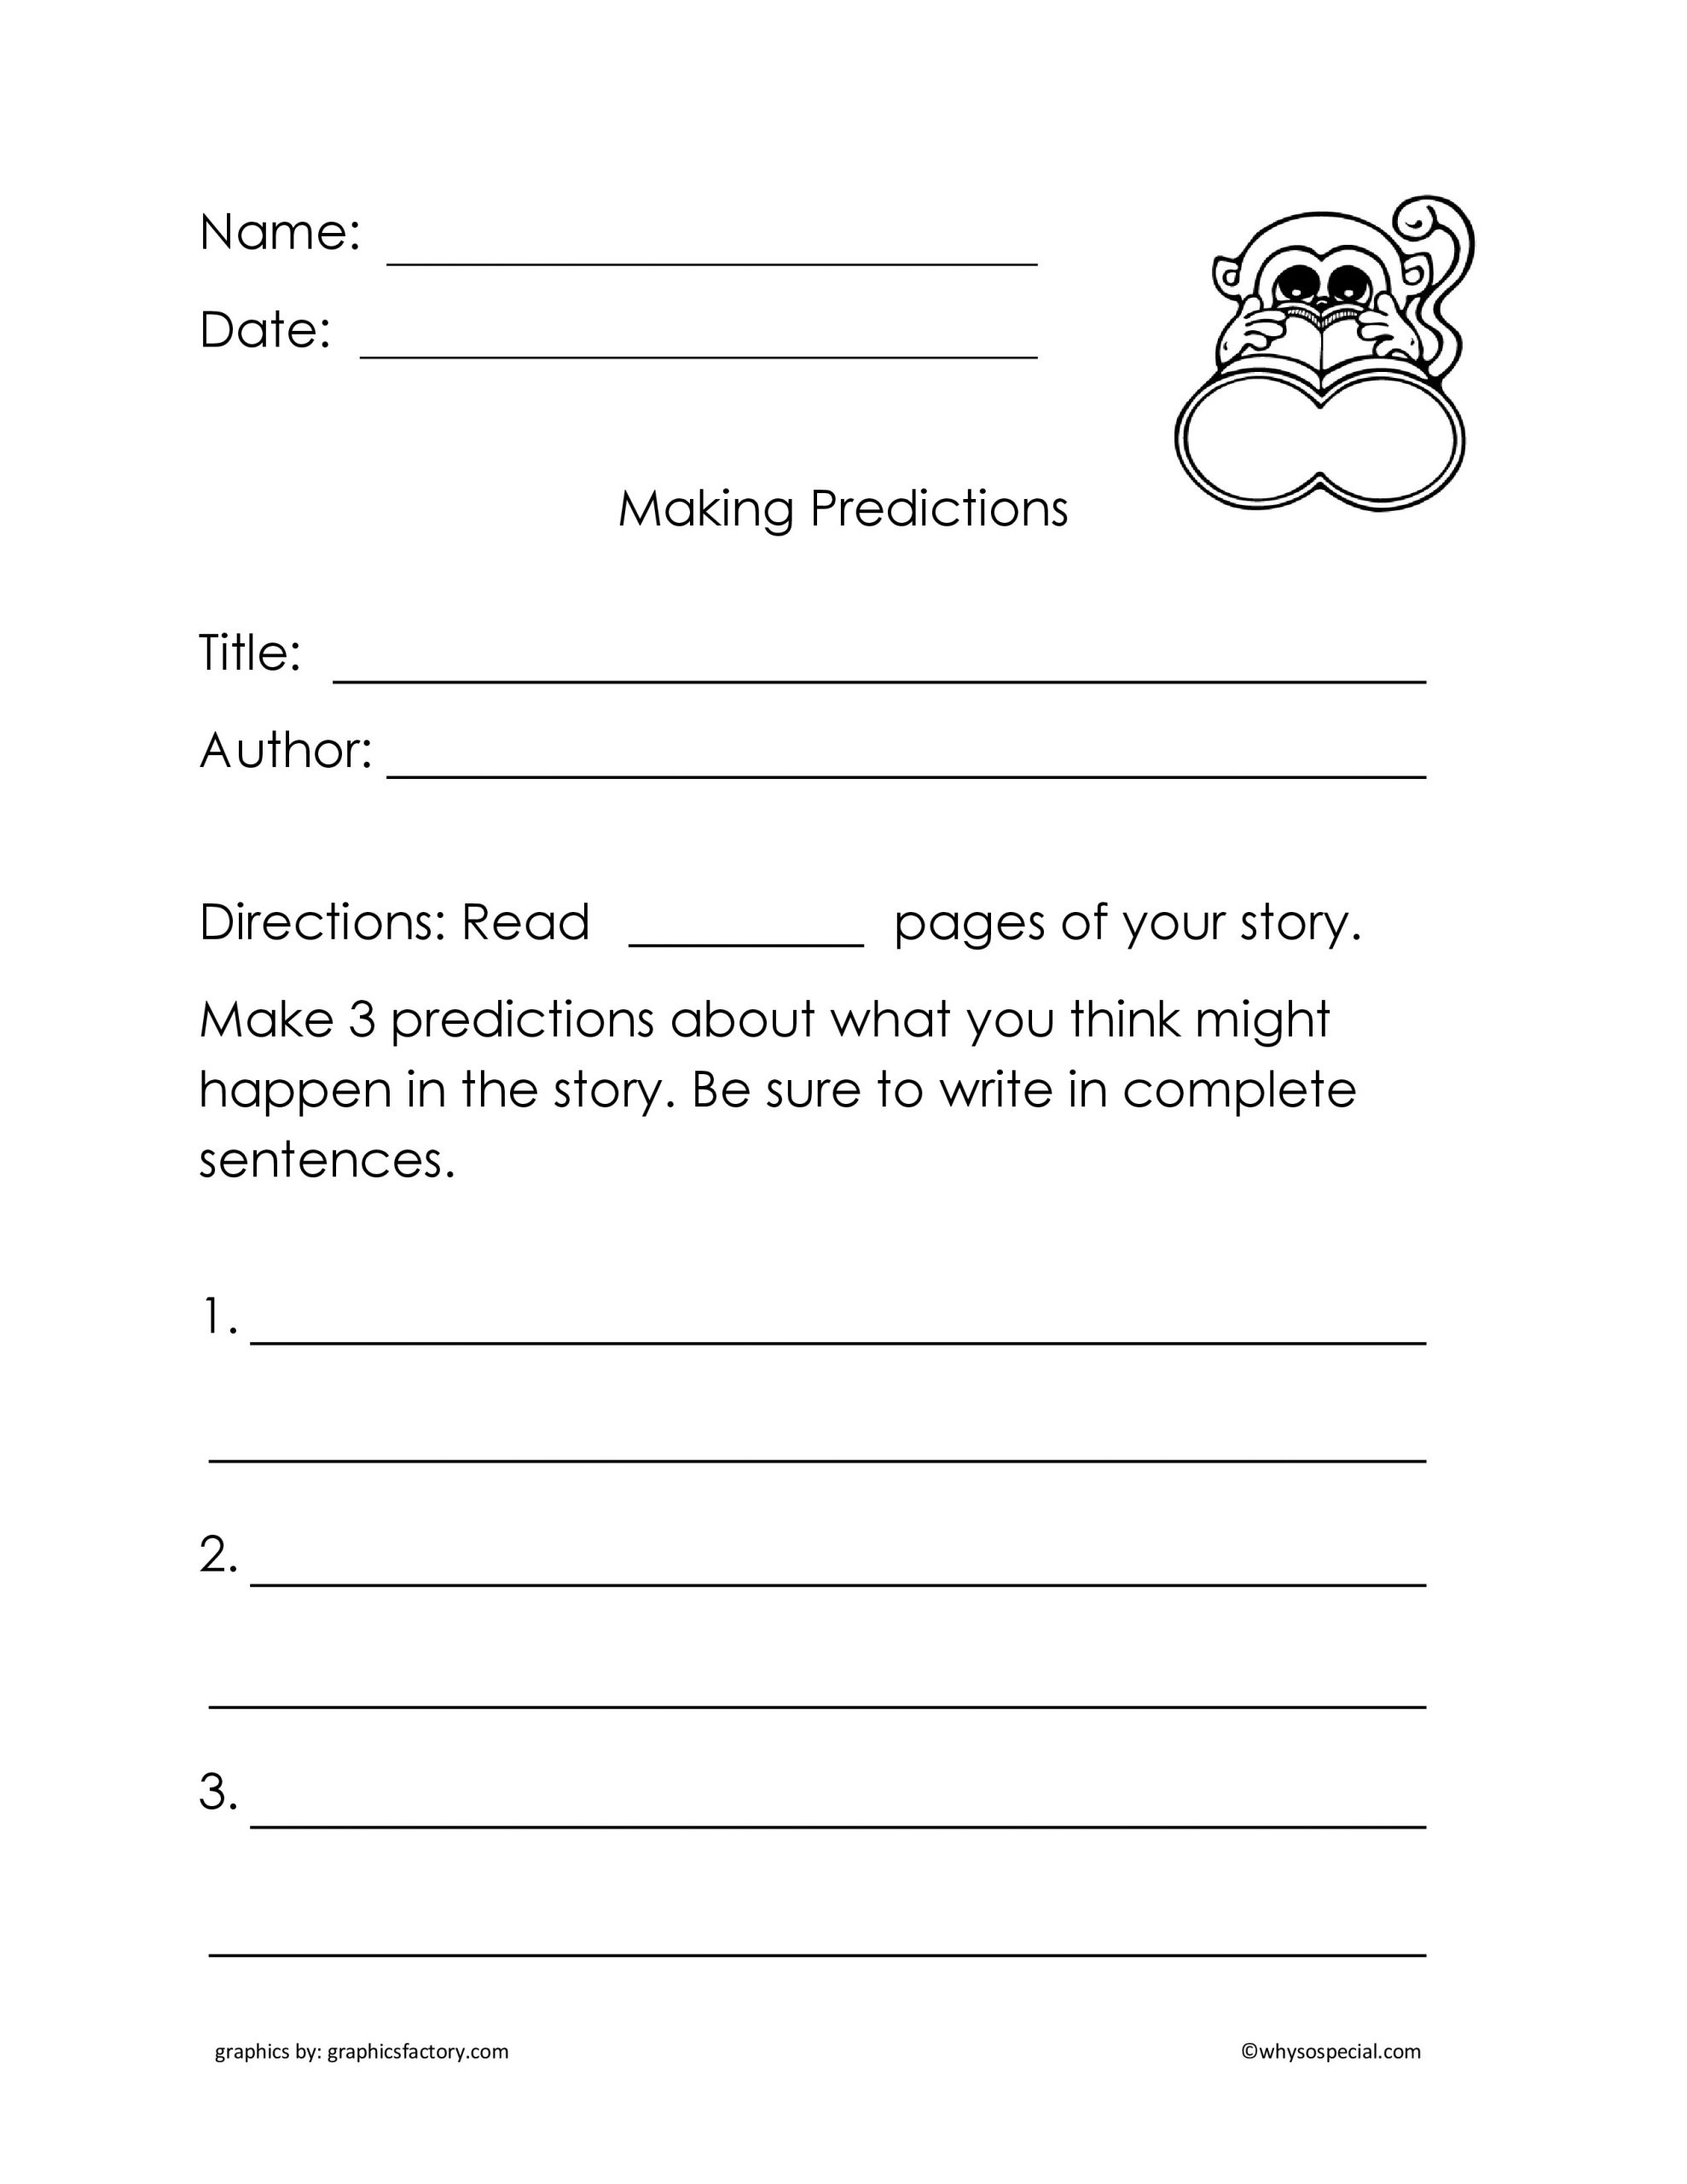 Making Predictions Worksheets 3rd Grade Making Predictions Weather Worksheet